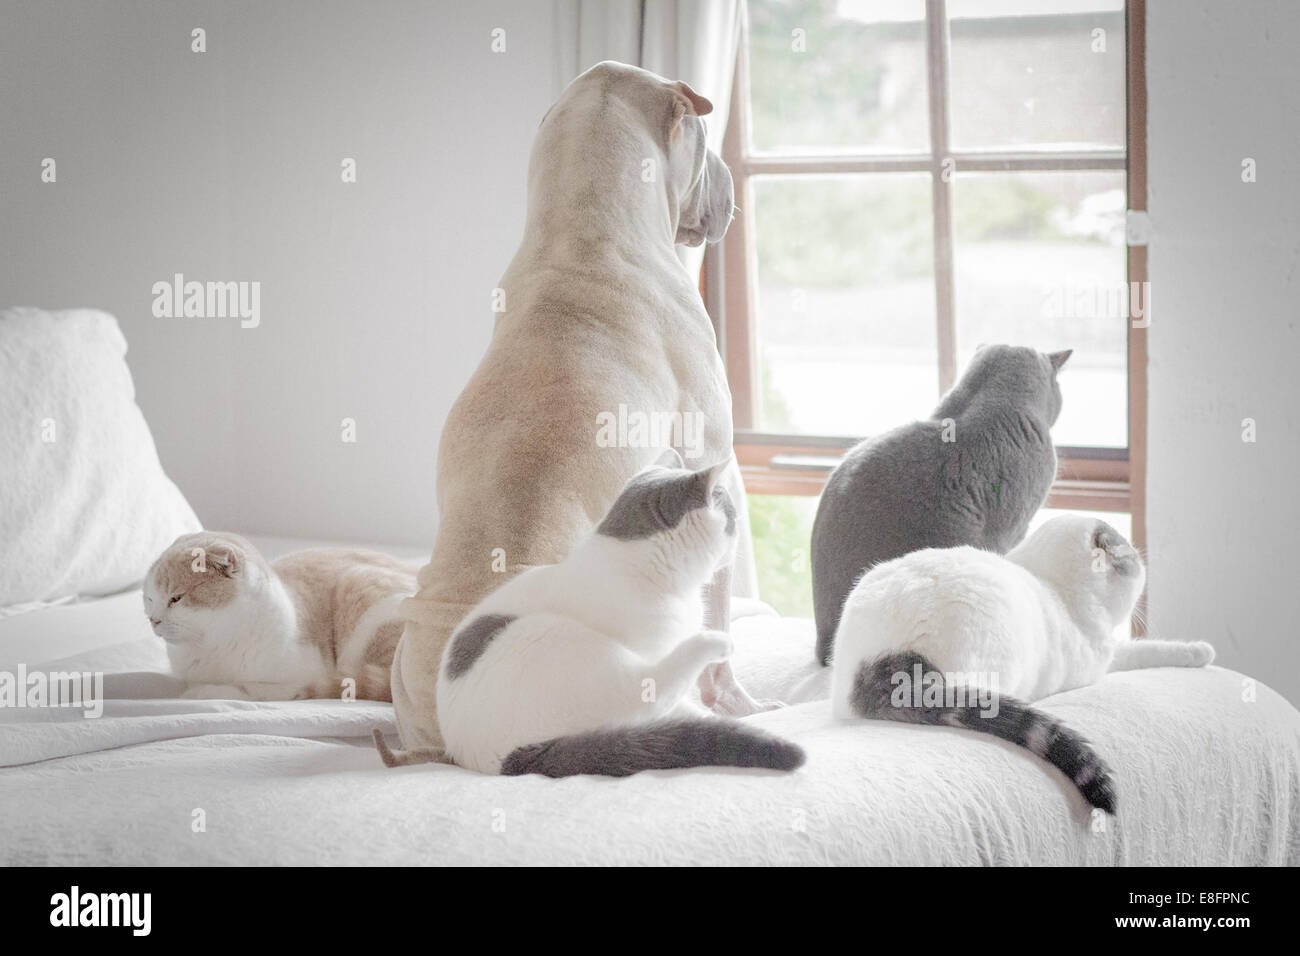 Dog and four cats looking out of window - Stock Image